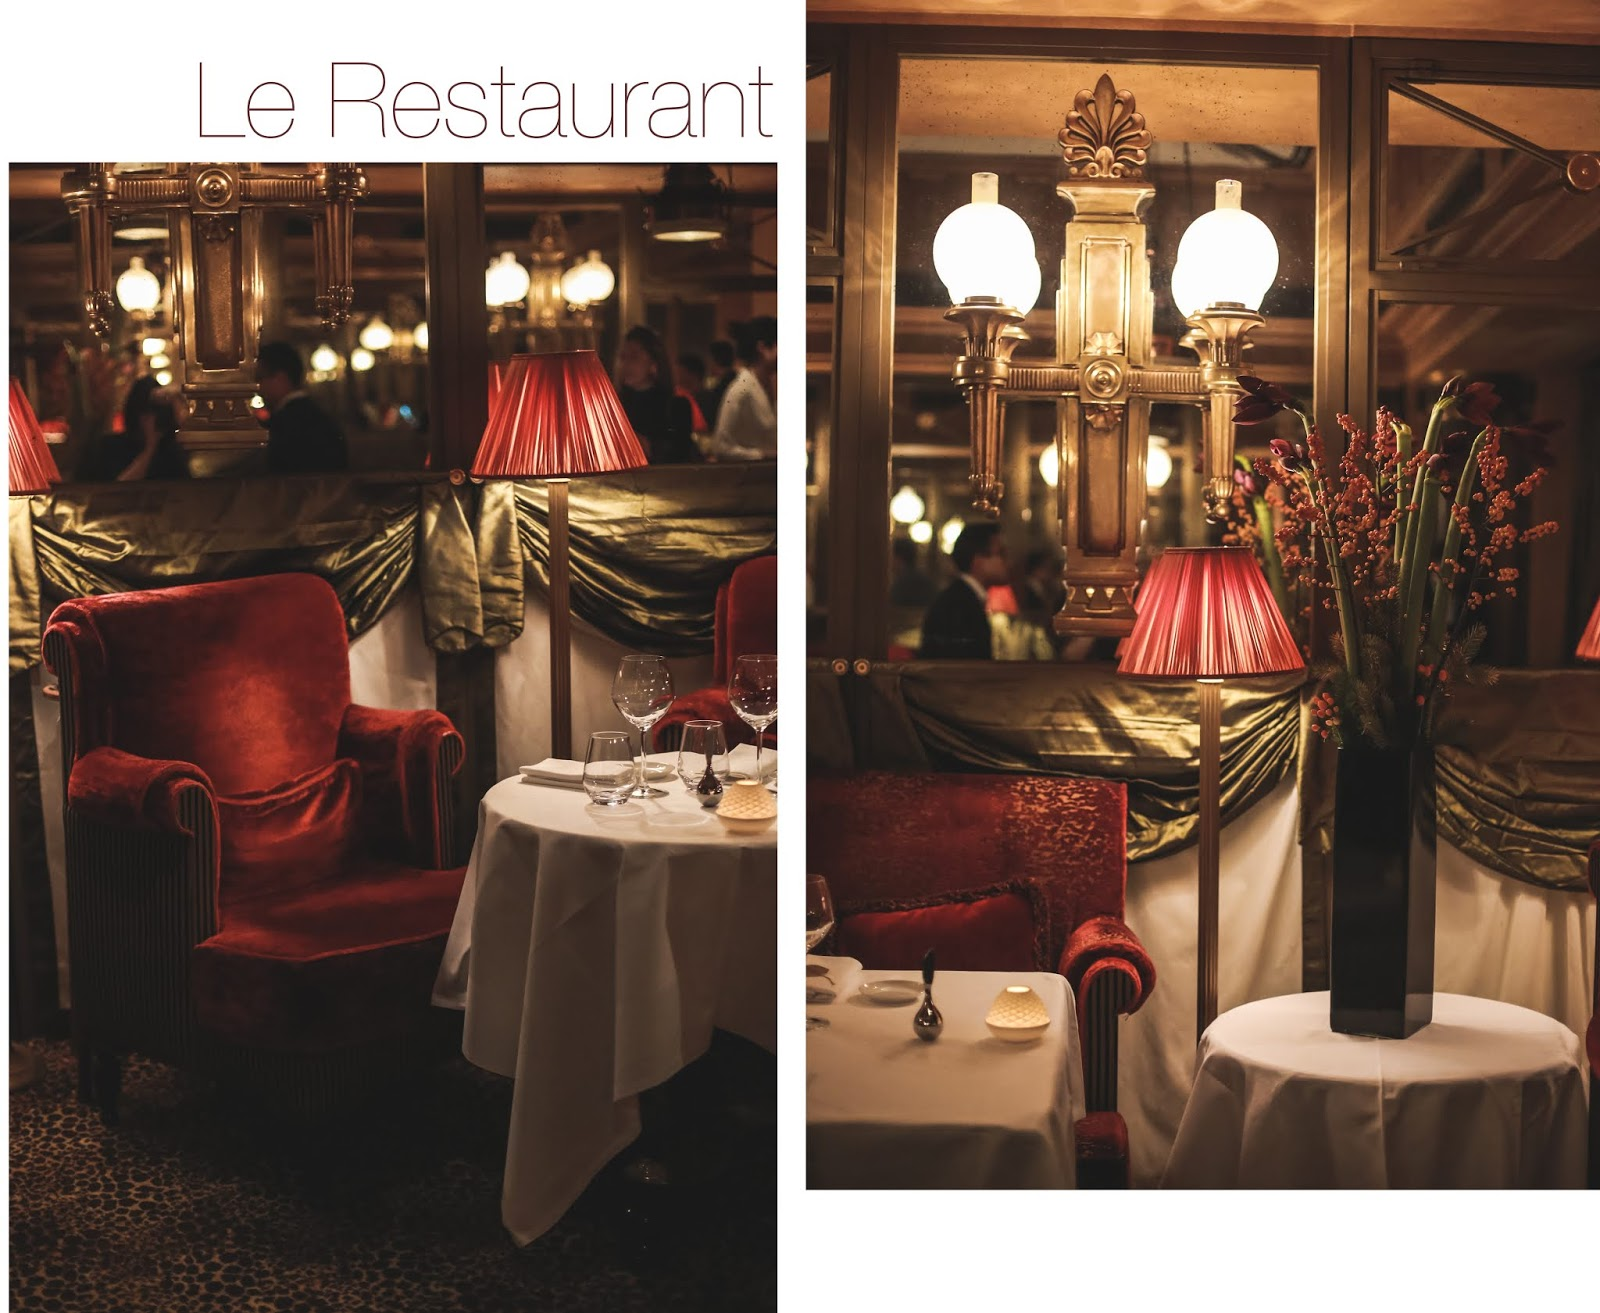 Le Restaurant avis blog food & lifestyle